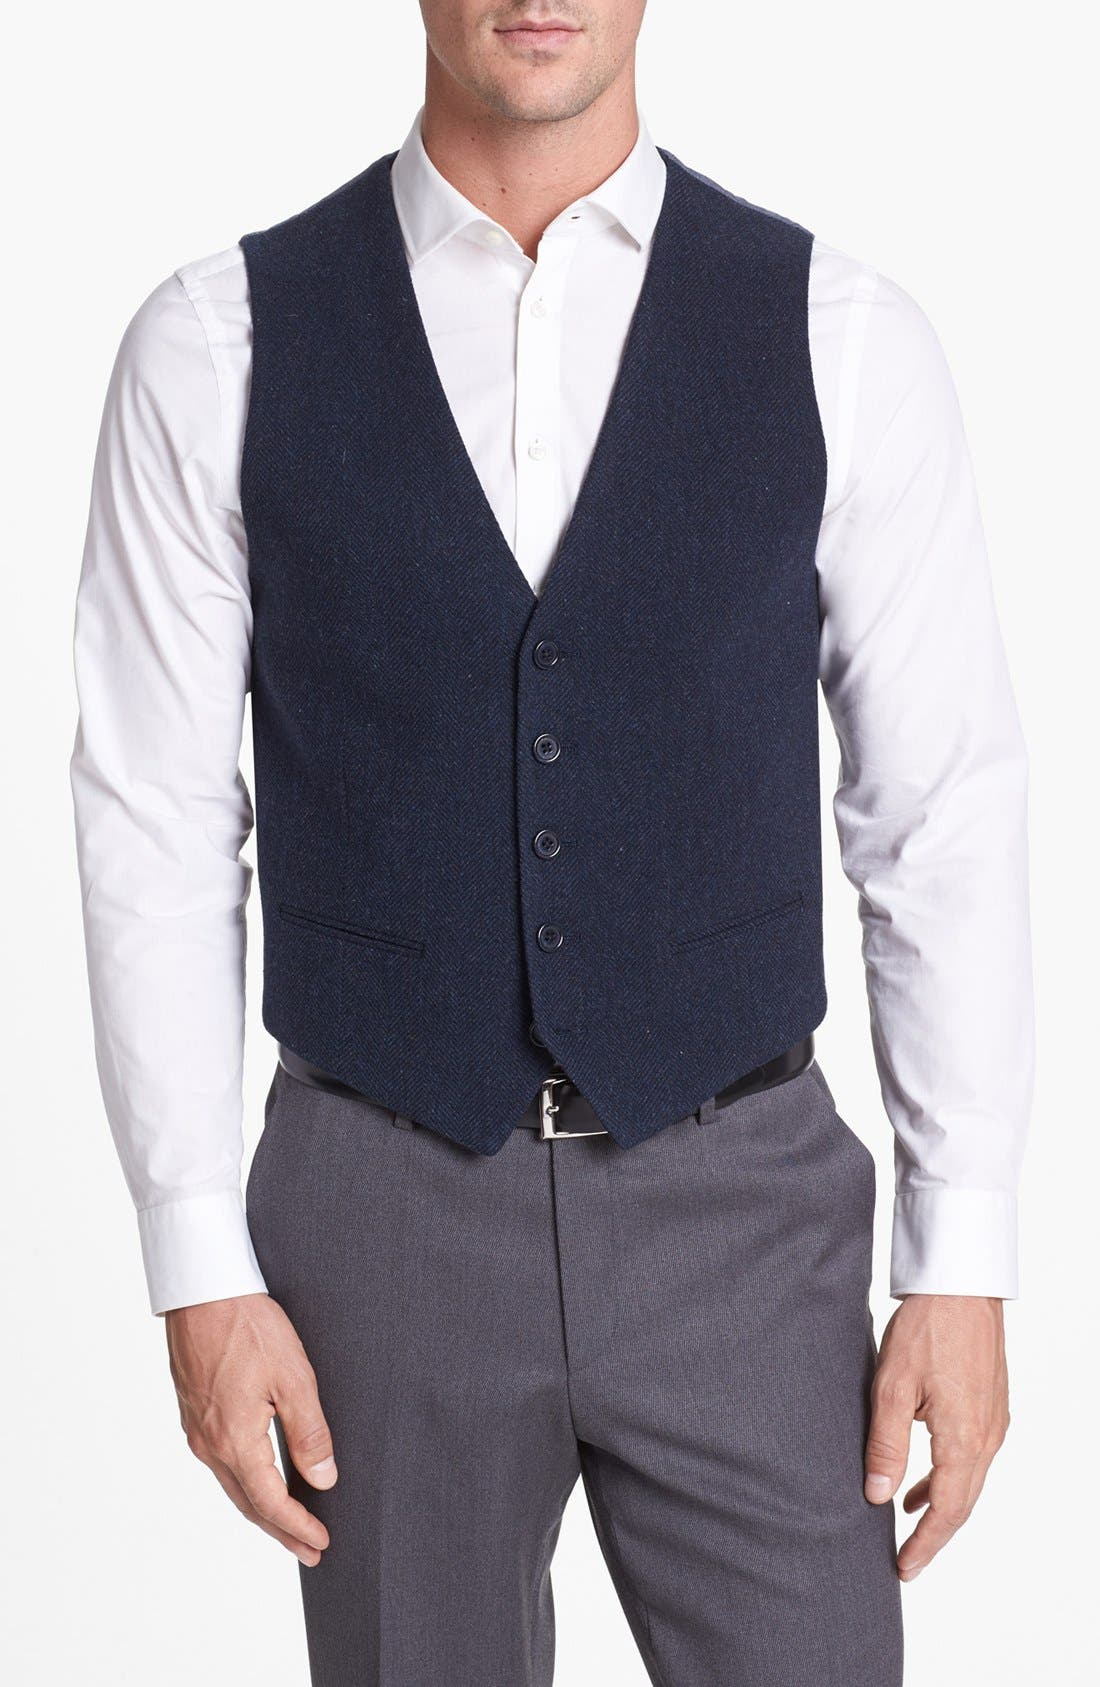 Main Image - Wallin & Bros. Herringbone Vest